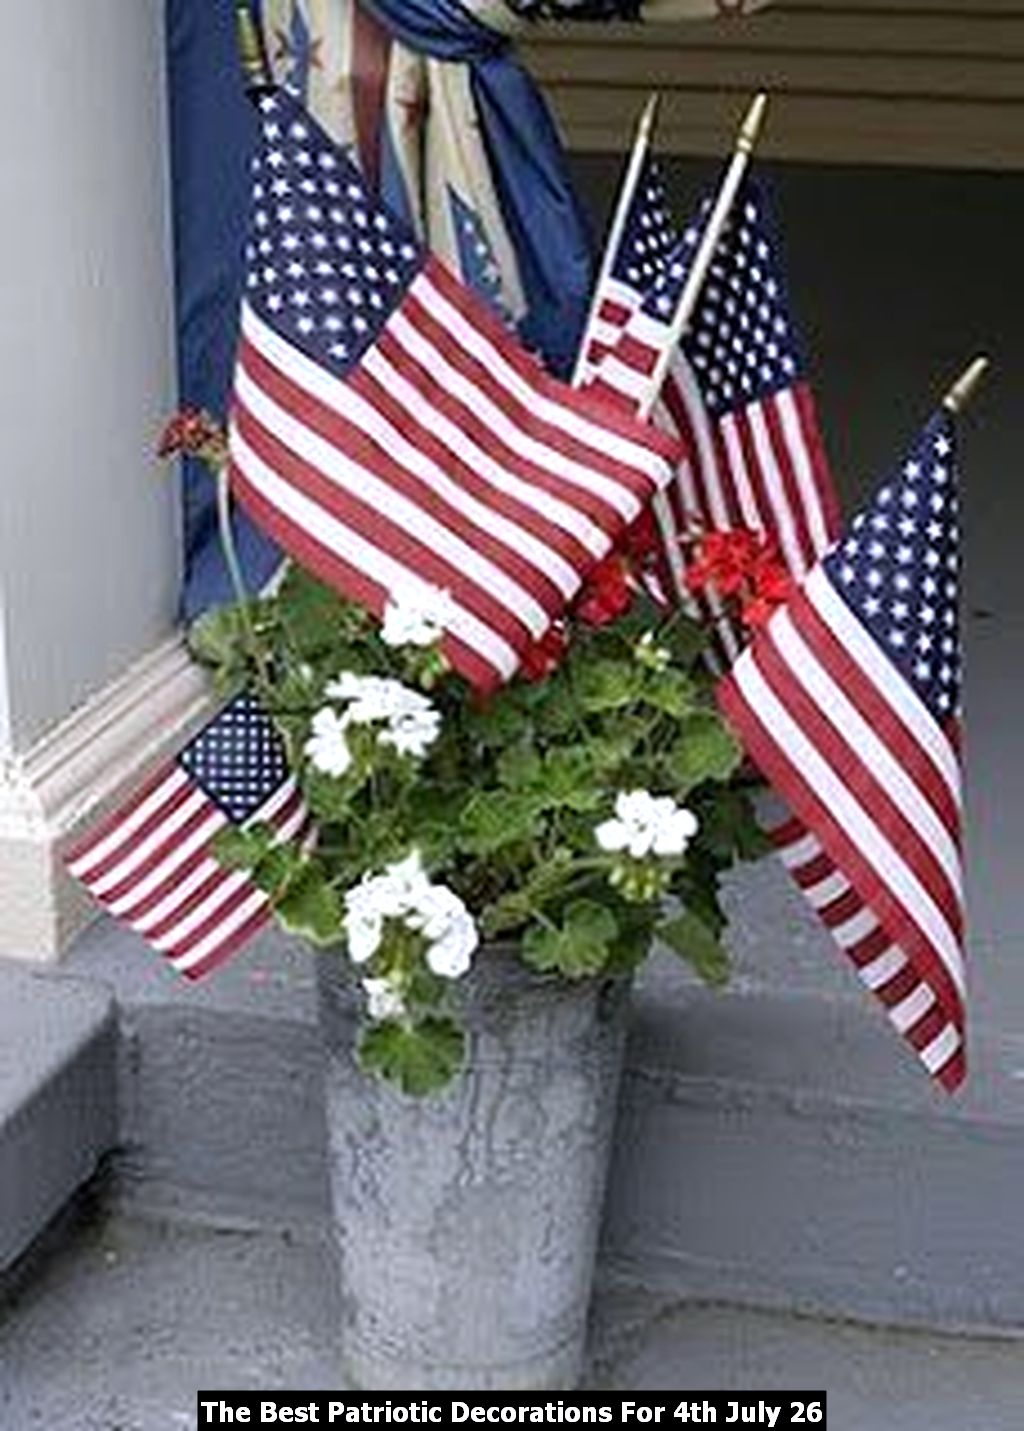 The Best Patriotic Decorations For 4th July 26